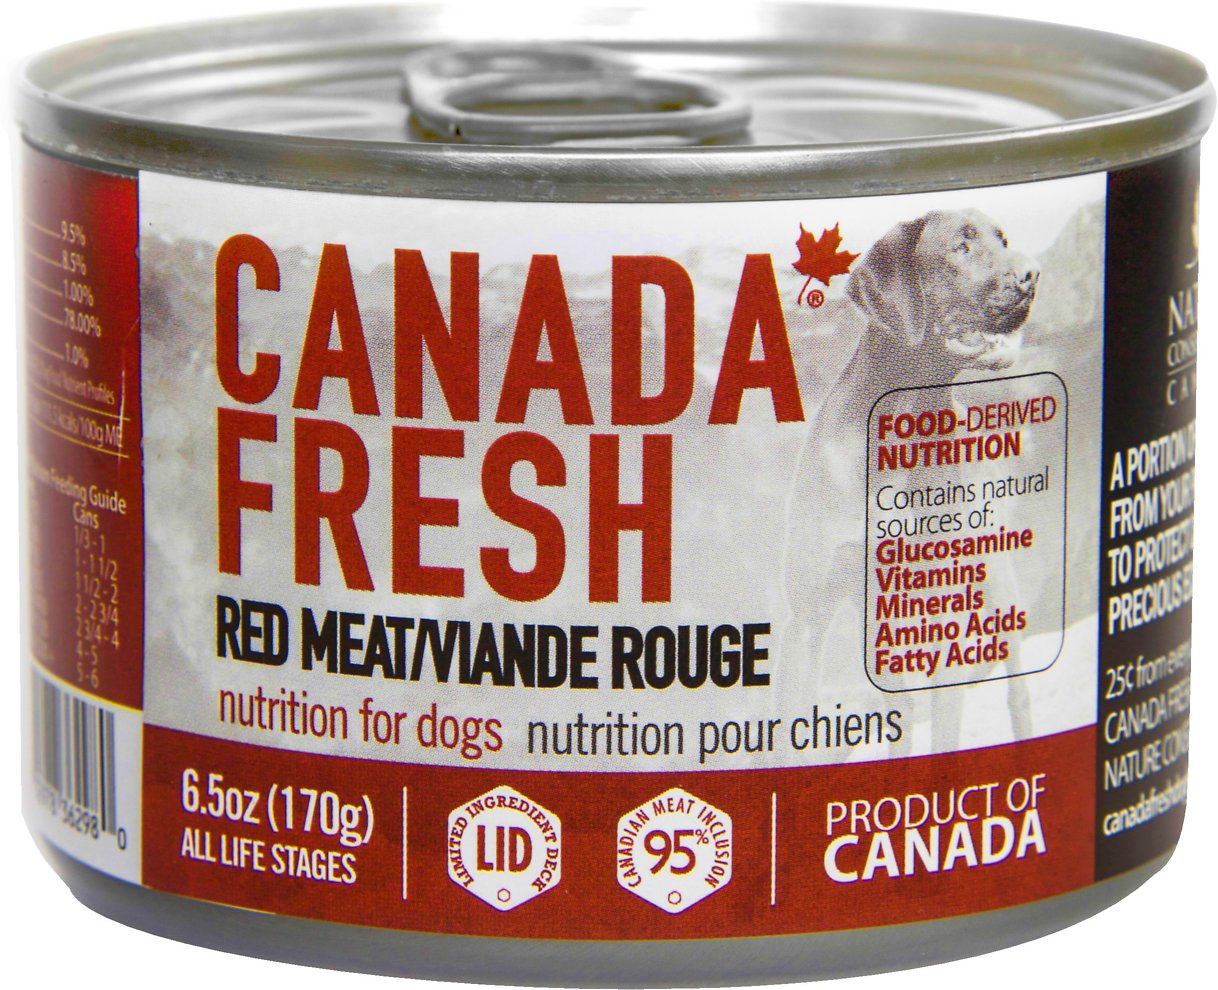 Canned Dog Food Horse Meat